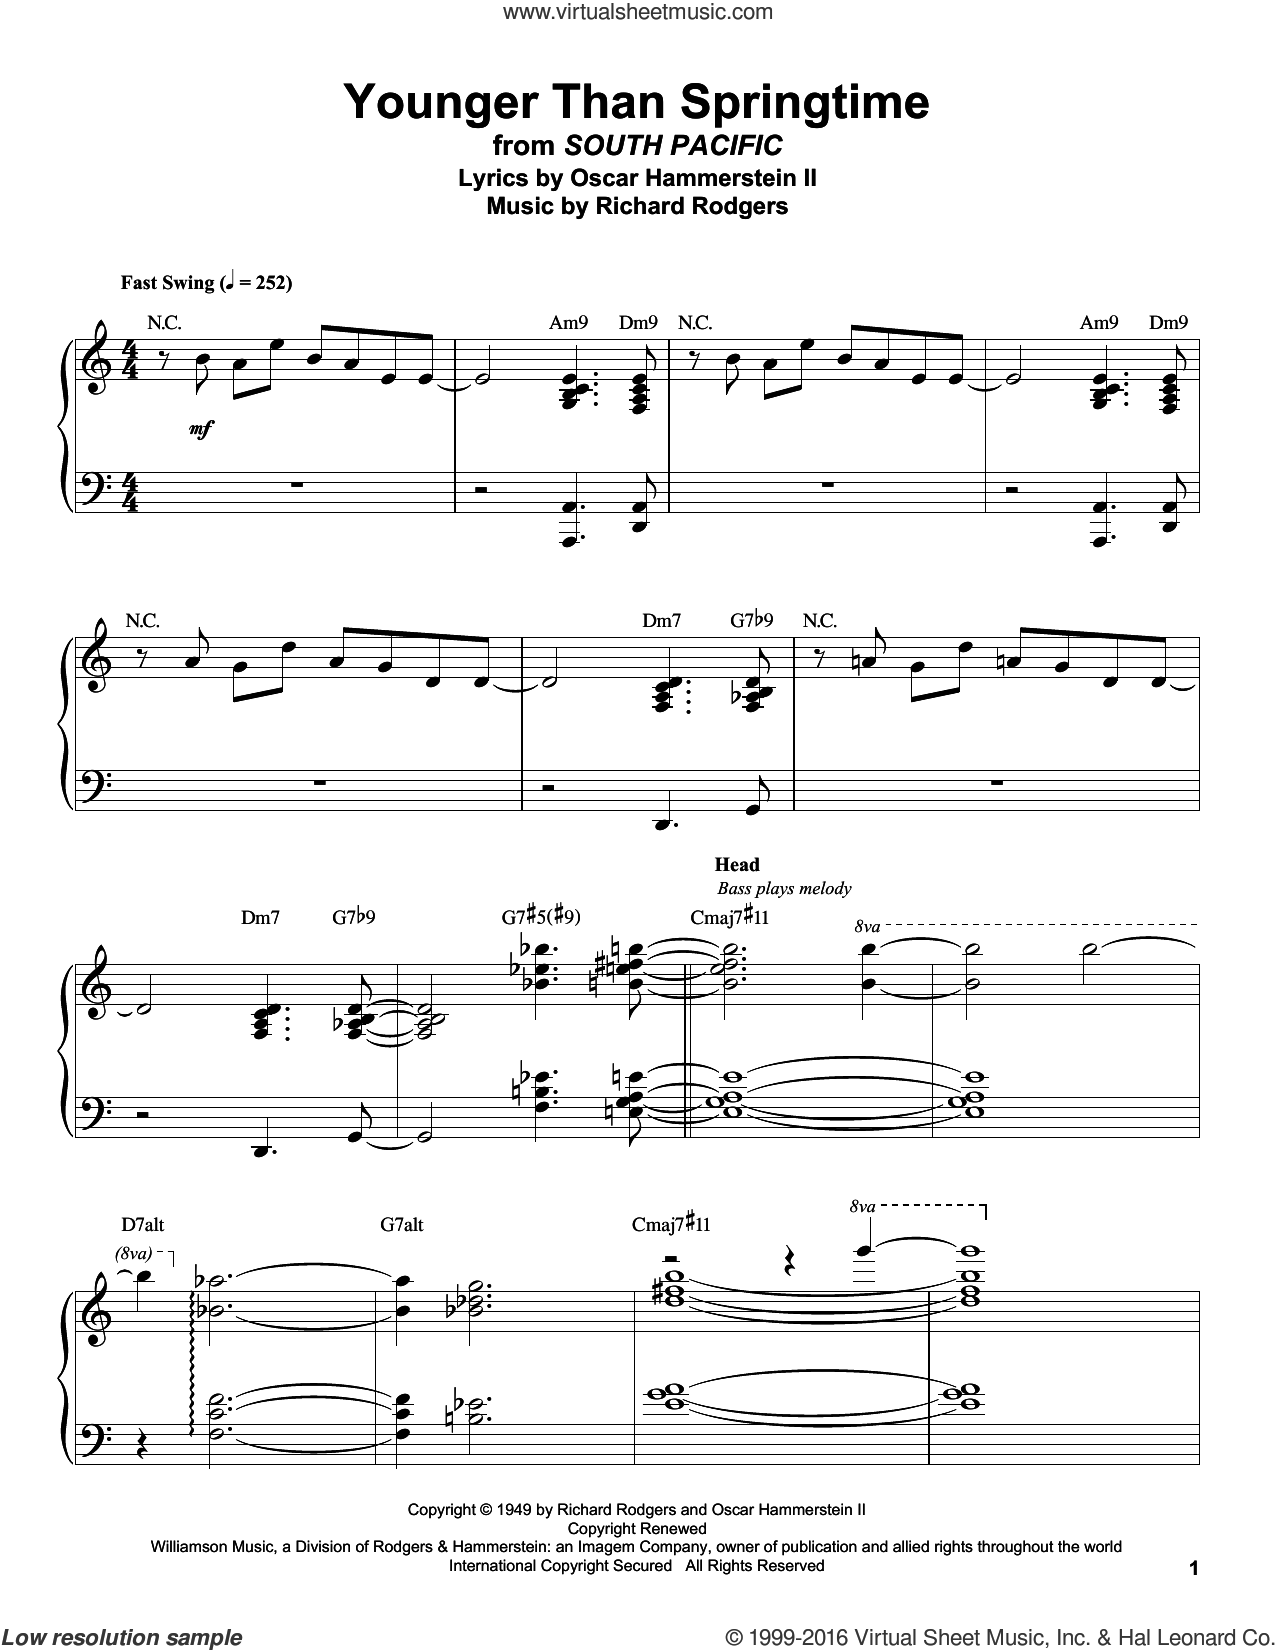 Younger Than Springtime sheet music for piano solo (transcription) by Rodgers & Hammerstein, Gordon MacRae, Stan Kenton, Oscar II Hammerstein and Richard Rodgers. Score Image Preview.